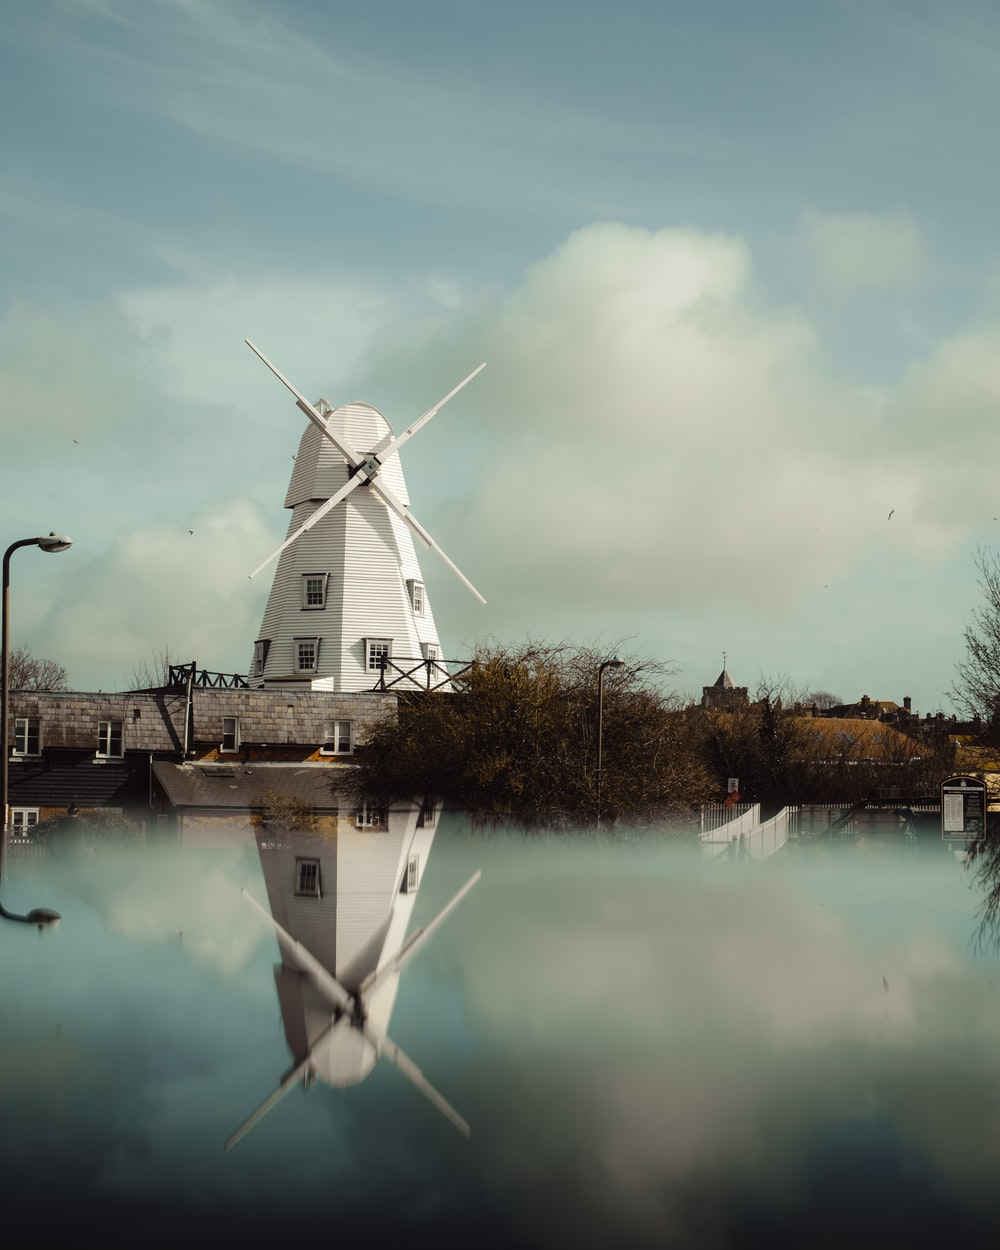 white windmill near body of water during daytime